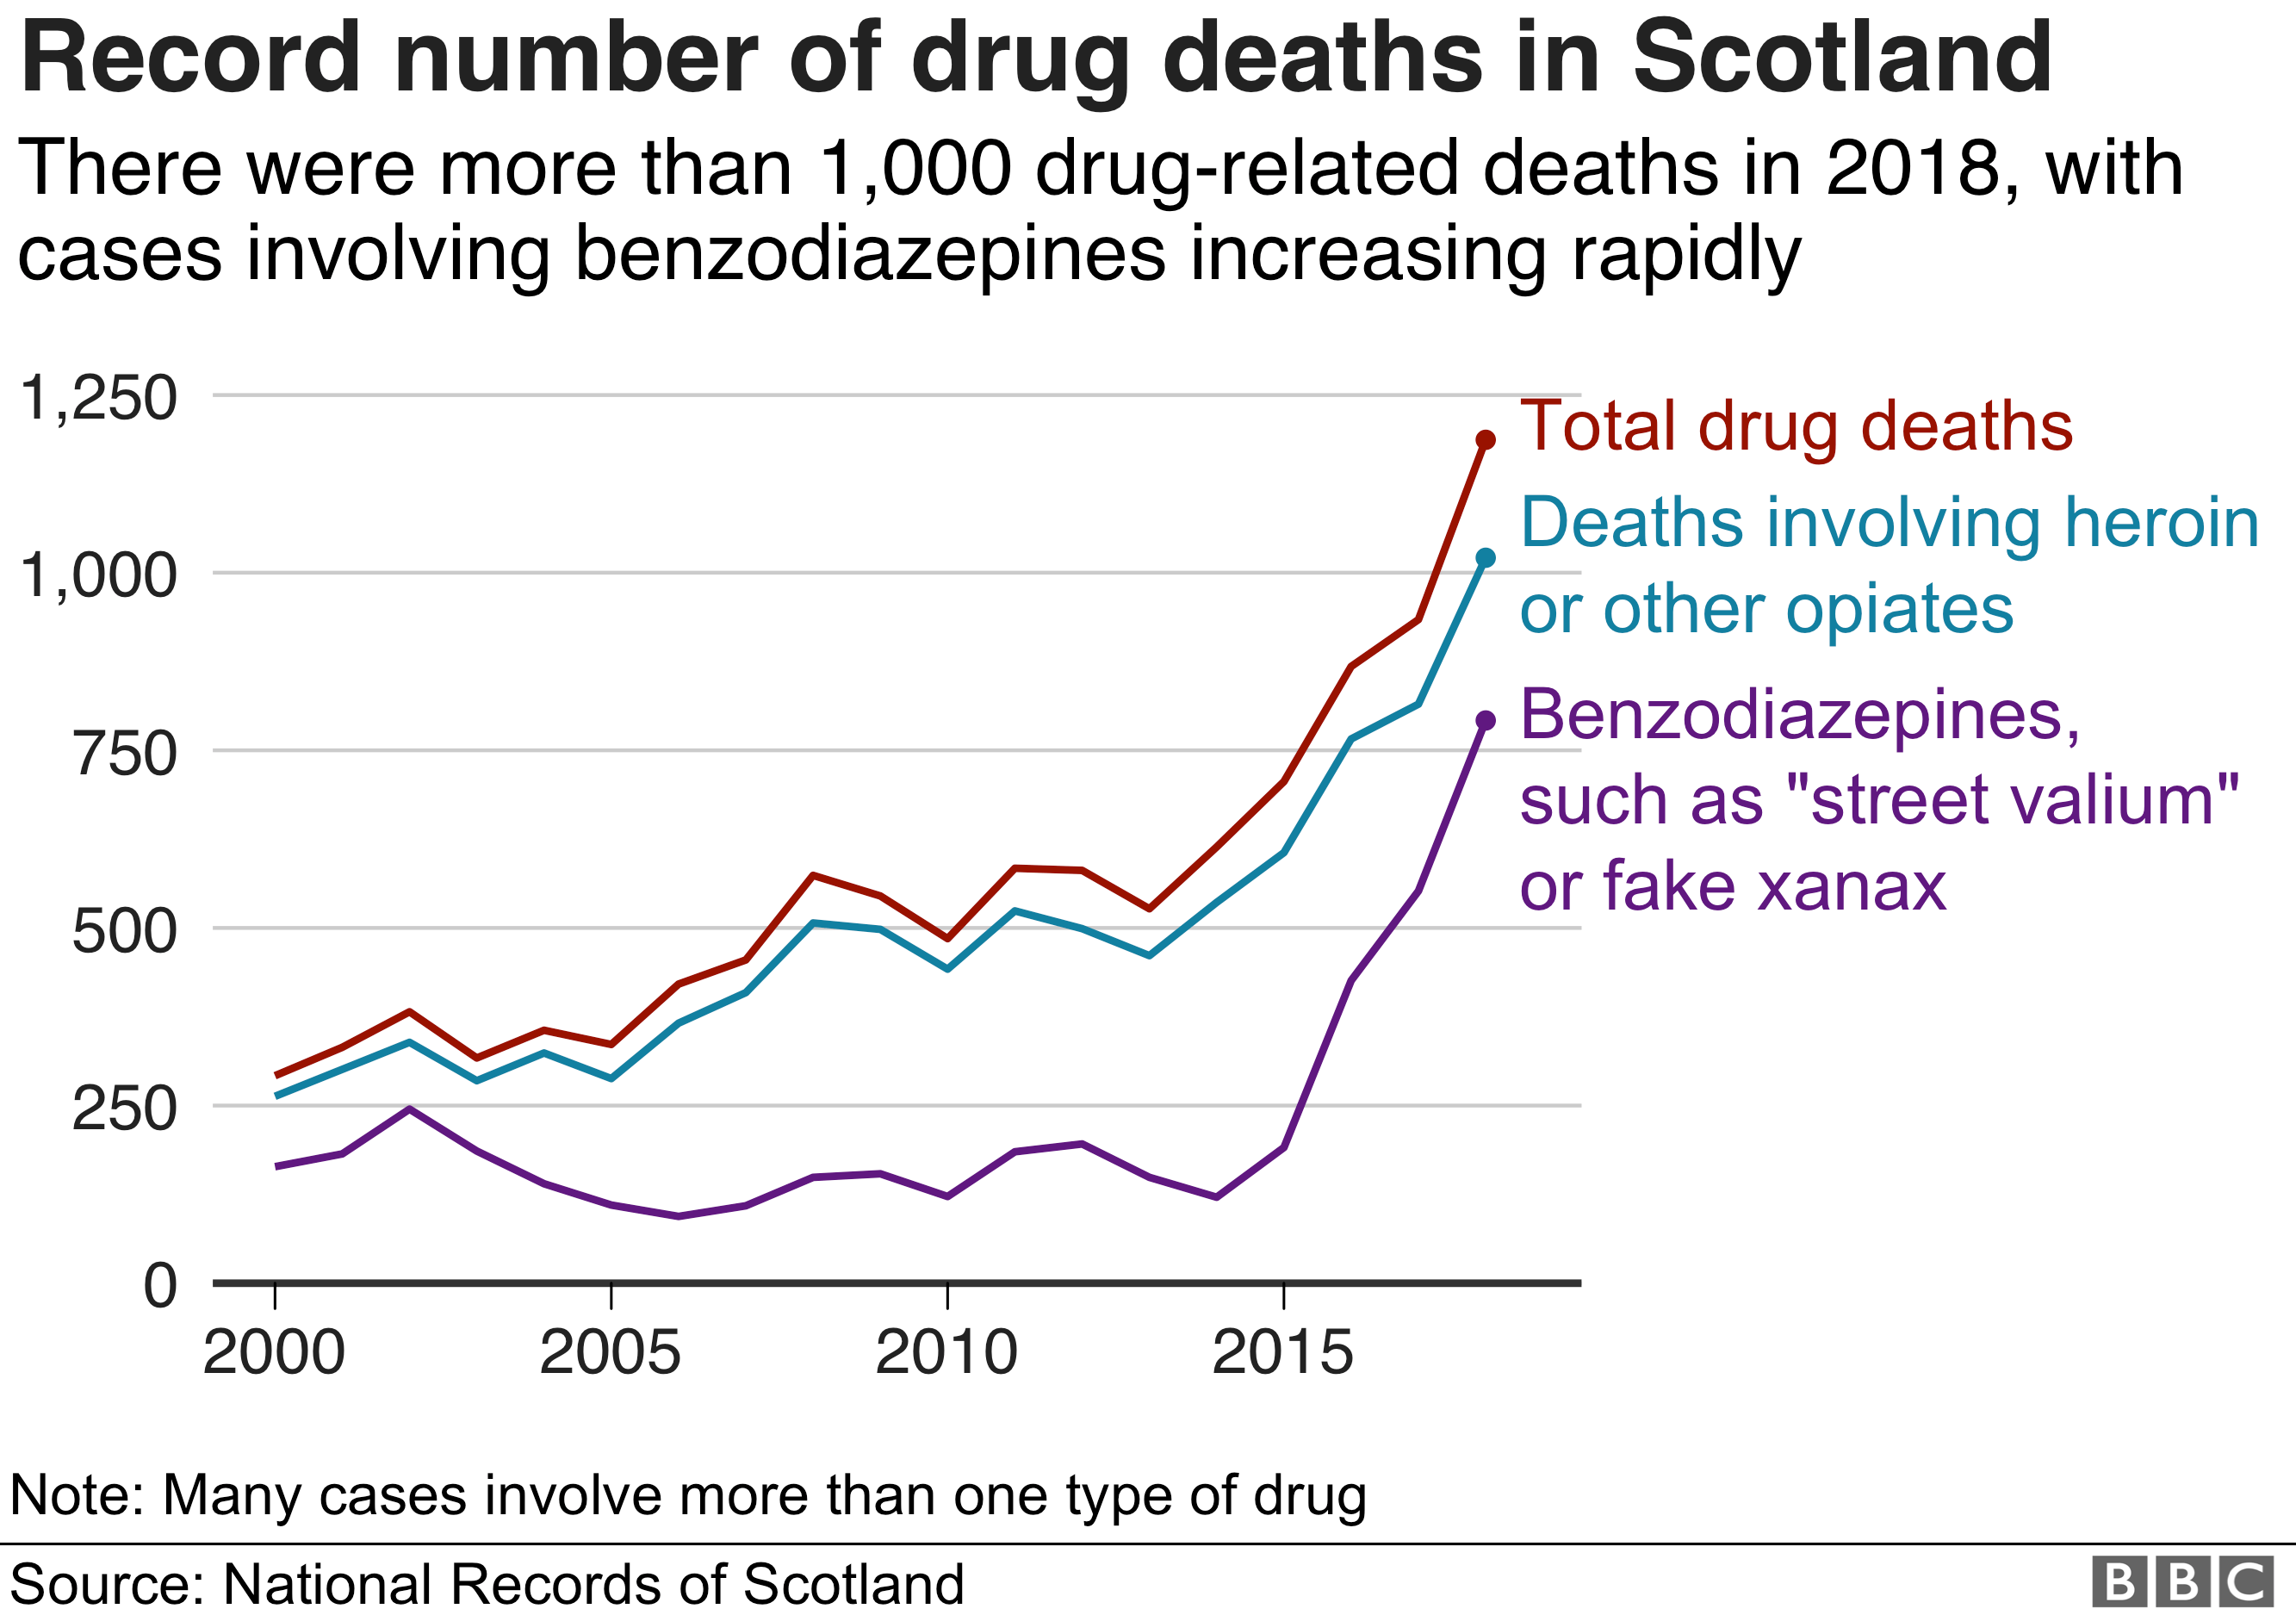 The number of drugs deaths in Scotland rose sharply again, above 1,000 for the first time. The number of deaths involving heroin was also over 1,000, from 840 last year. The number of deaths related to benzodiazepines was up to 797 from 555 in 2017